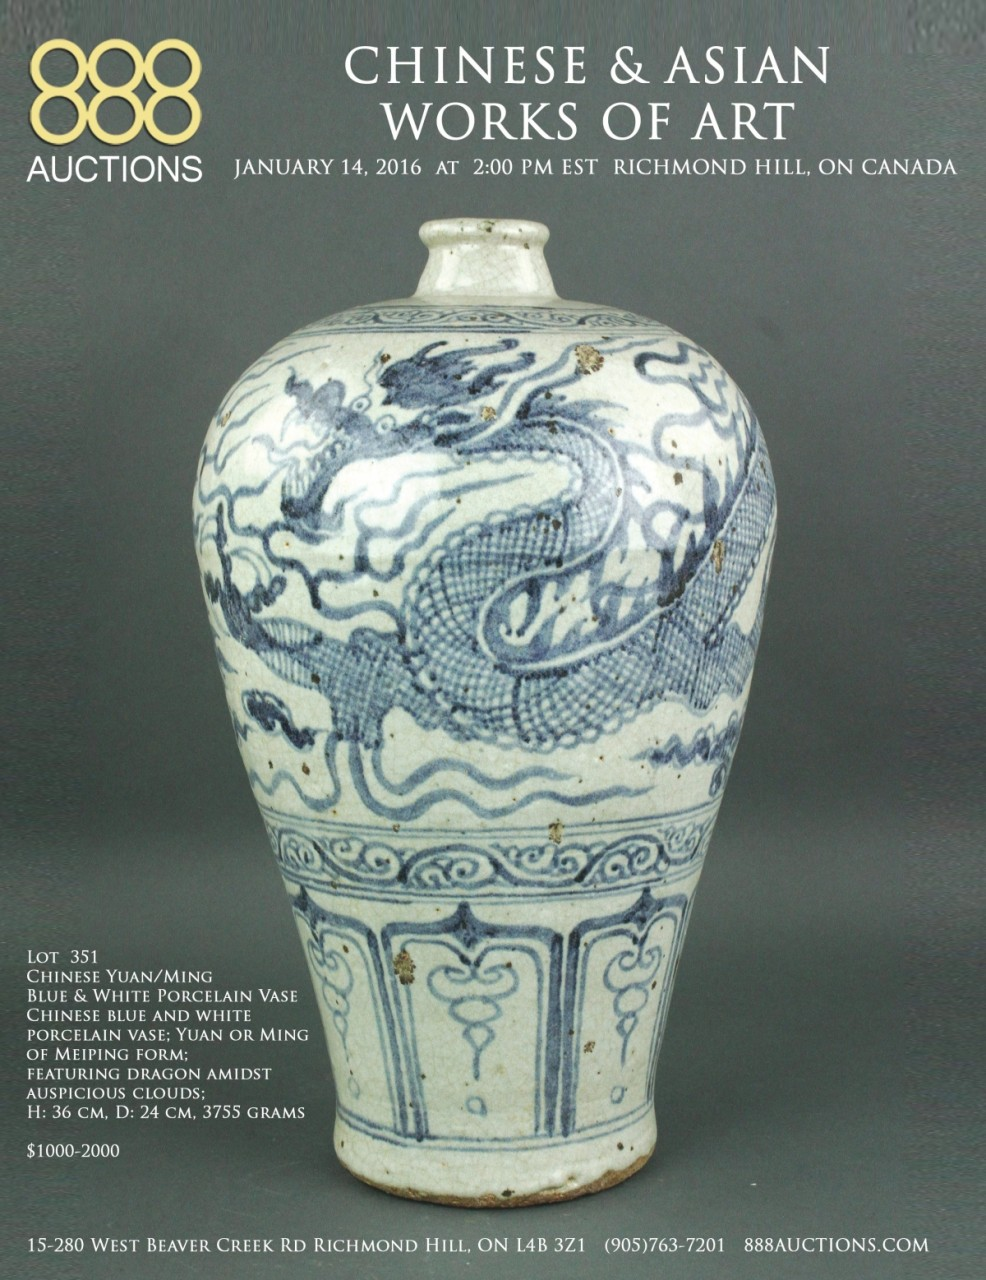 NEXT AUCTION 14 JAN 2016 CHINESE & ASIAN WORKS OF ART